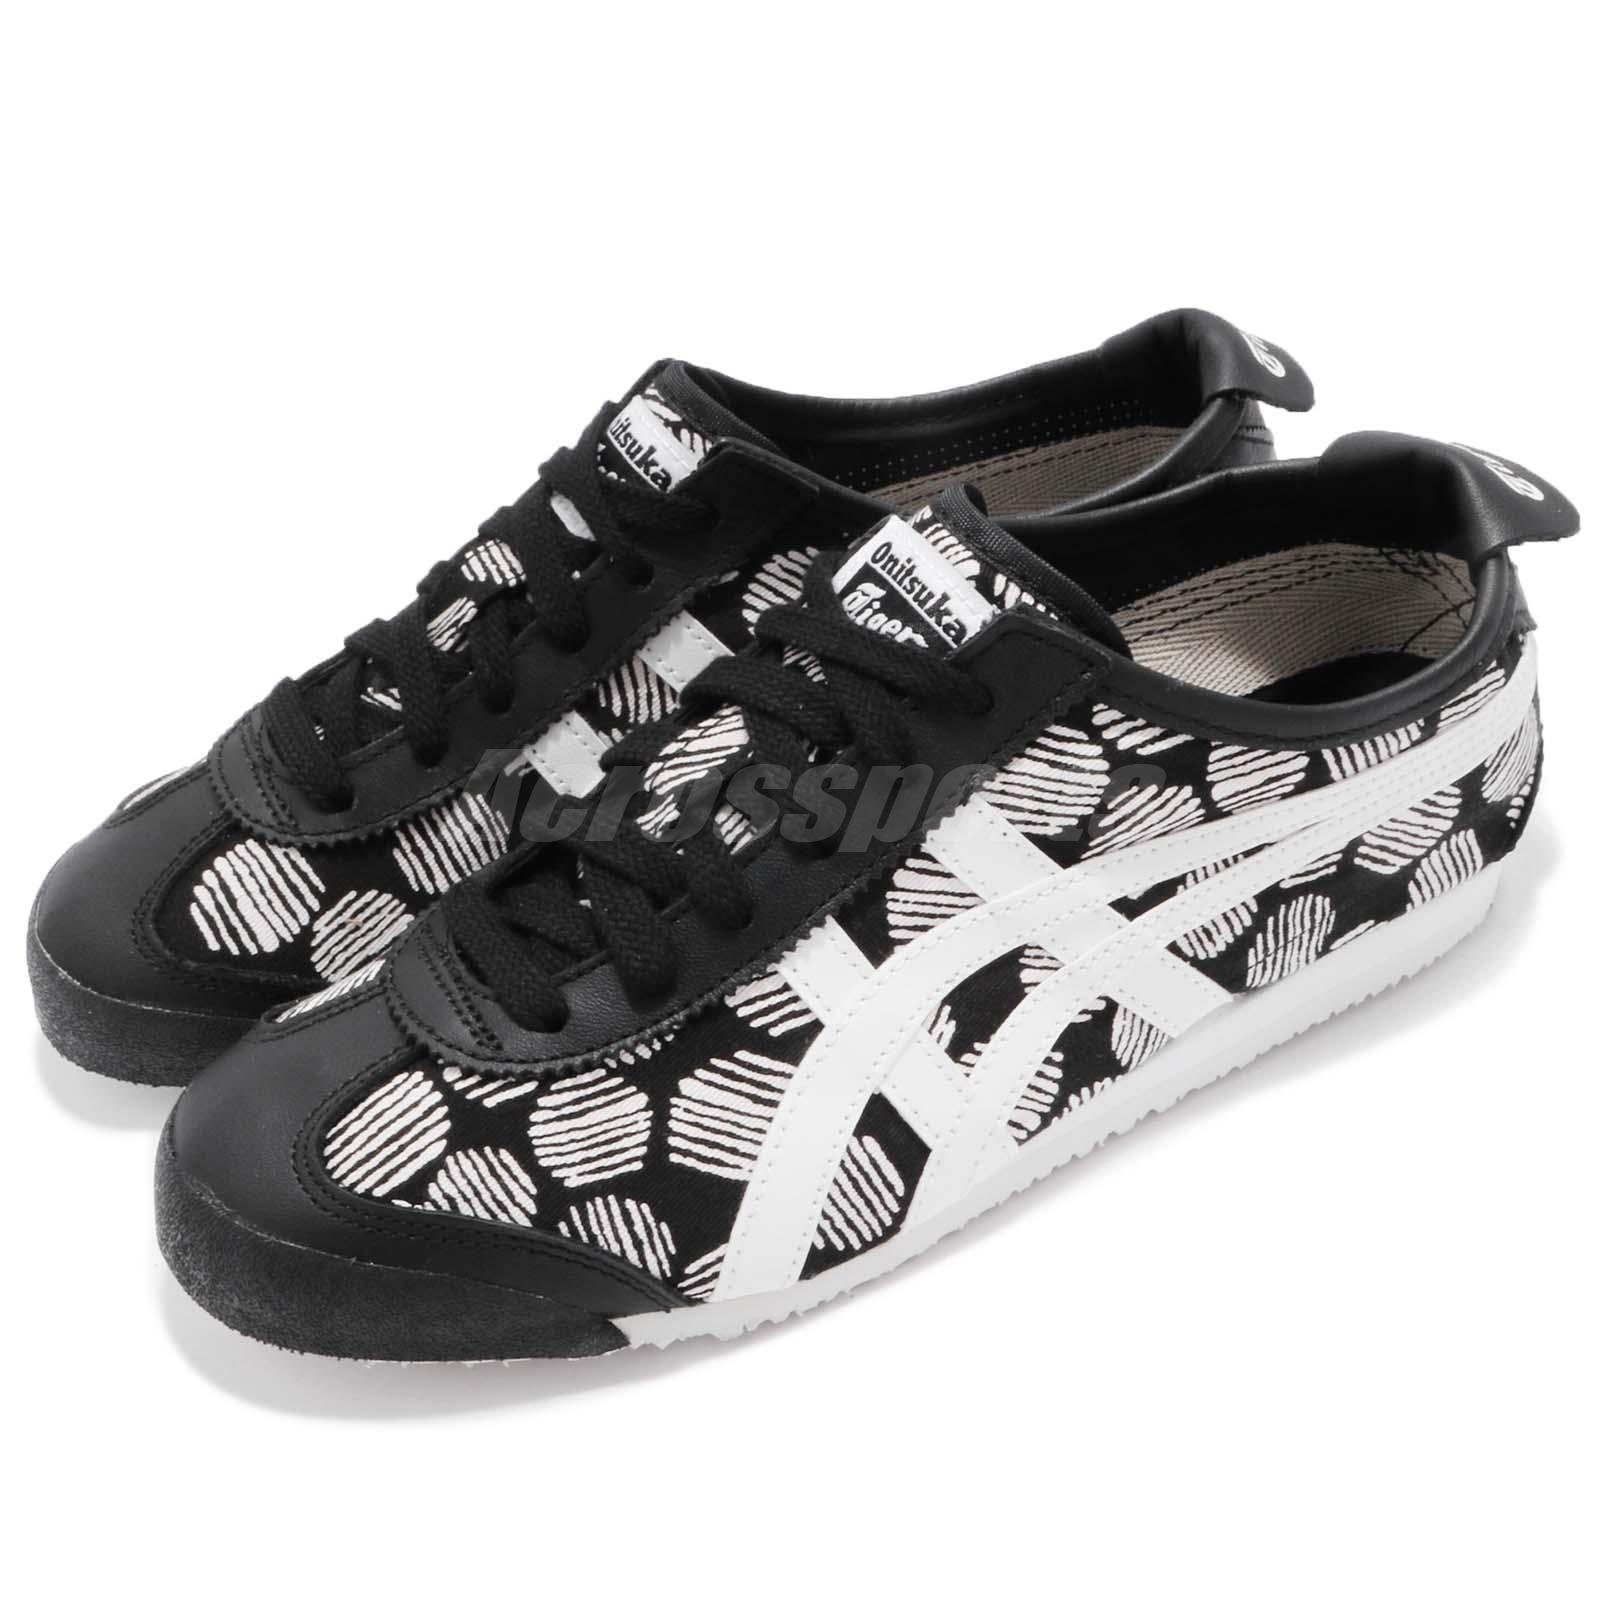 buy popular 199d0 d0b67 Details about Asics Onitsuka Tiger Mexico 66 Black White Round Men Running  Shoes D620N-9001